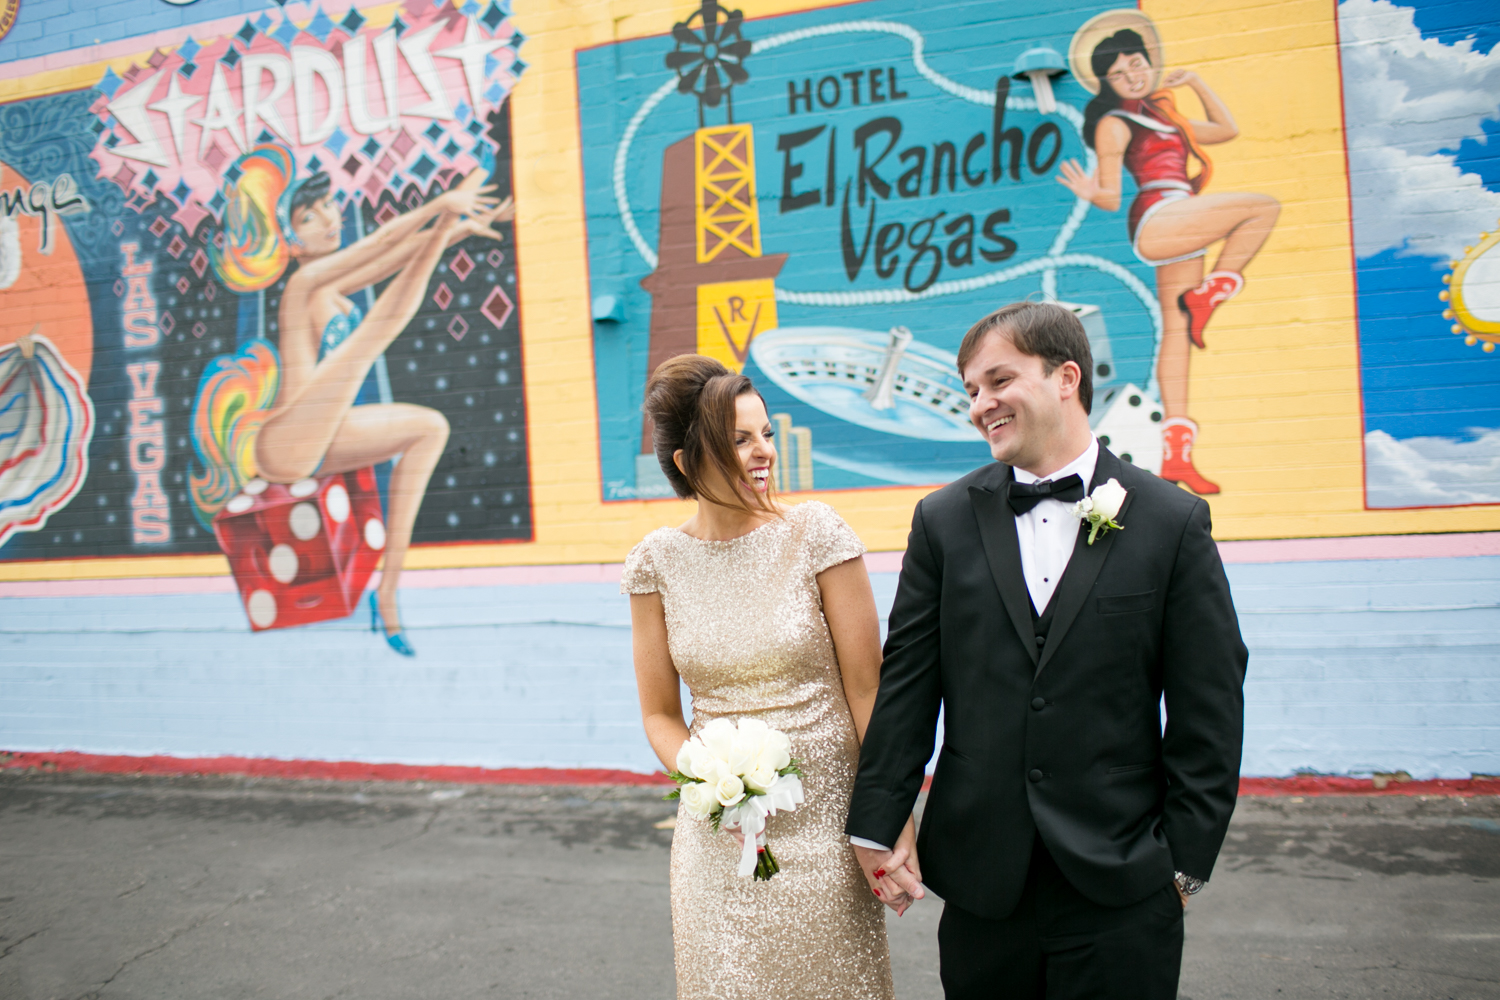 Bride and groom elope at little wedding chapel in Las Vegas, Nevada with elopement photographer Lovisa Photo.